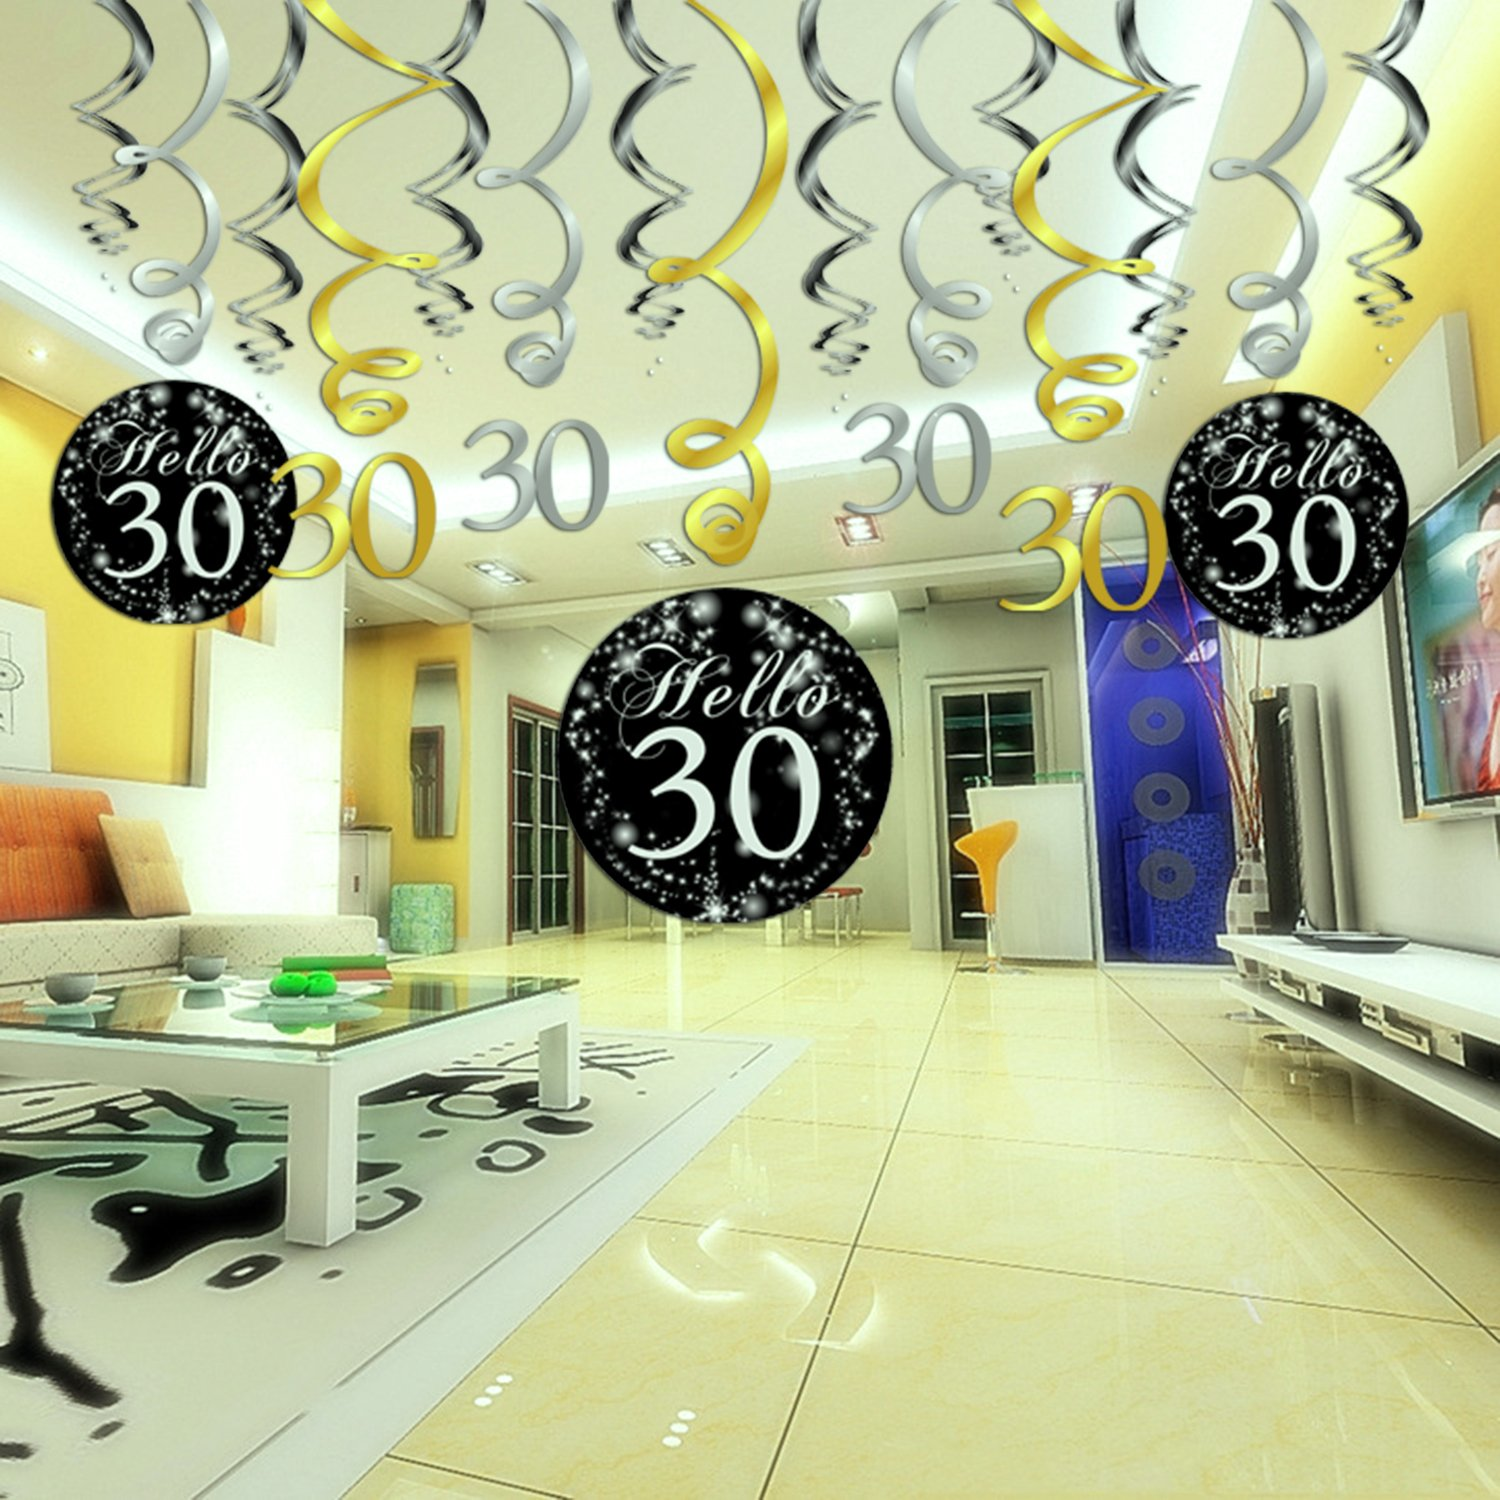 Number 30 Table Confetti 30 Birthday Decorations,Konsait Gold Black Silver Decor 30th Birthday Hanging Swirl Party Streamers Pack Ceiling Decor for 30 Birthday Party Decorations Favor Supplies 1.05oz 15 Counts